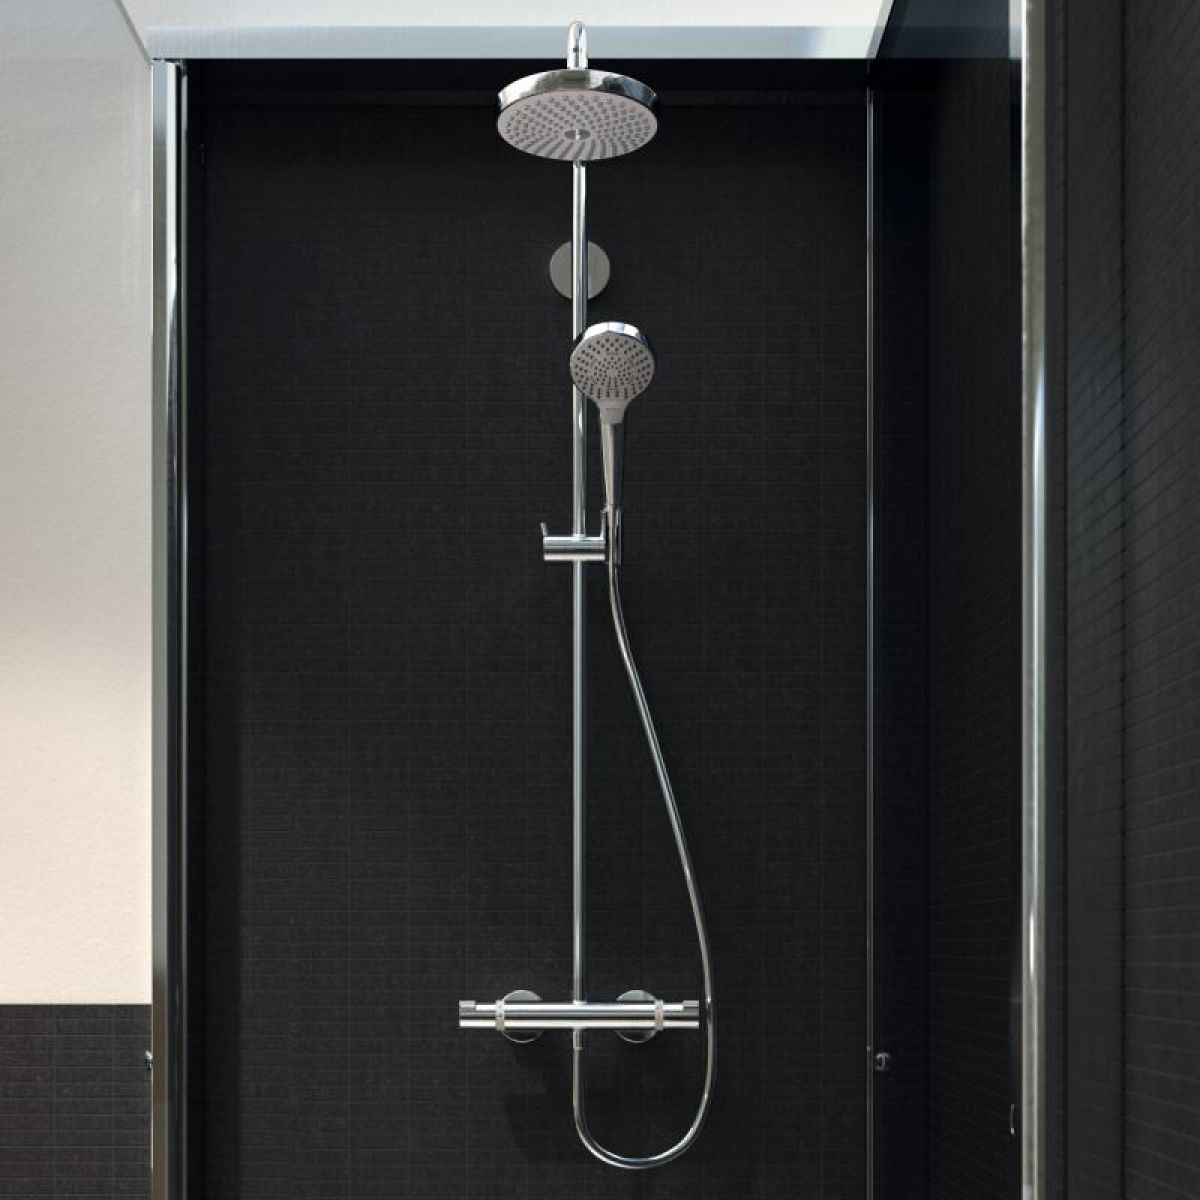 hansgrohe raindance select s 240 1jet showerpipe uk. Black Bedroom Furniture Sets. Home Design Ideas